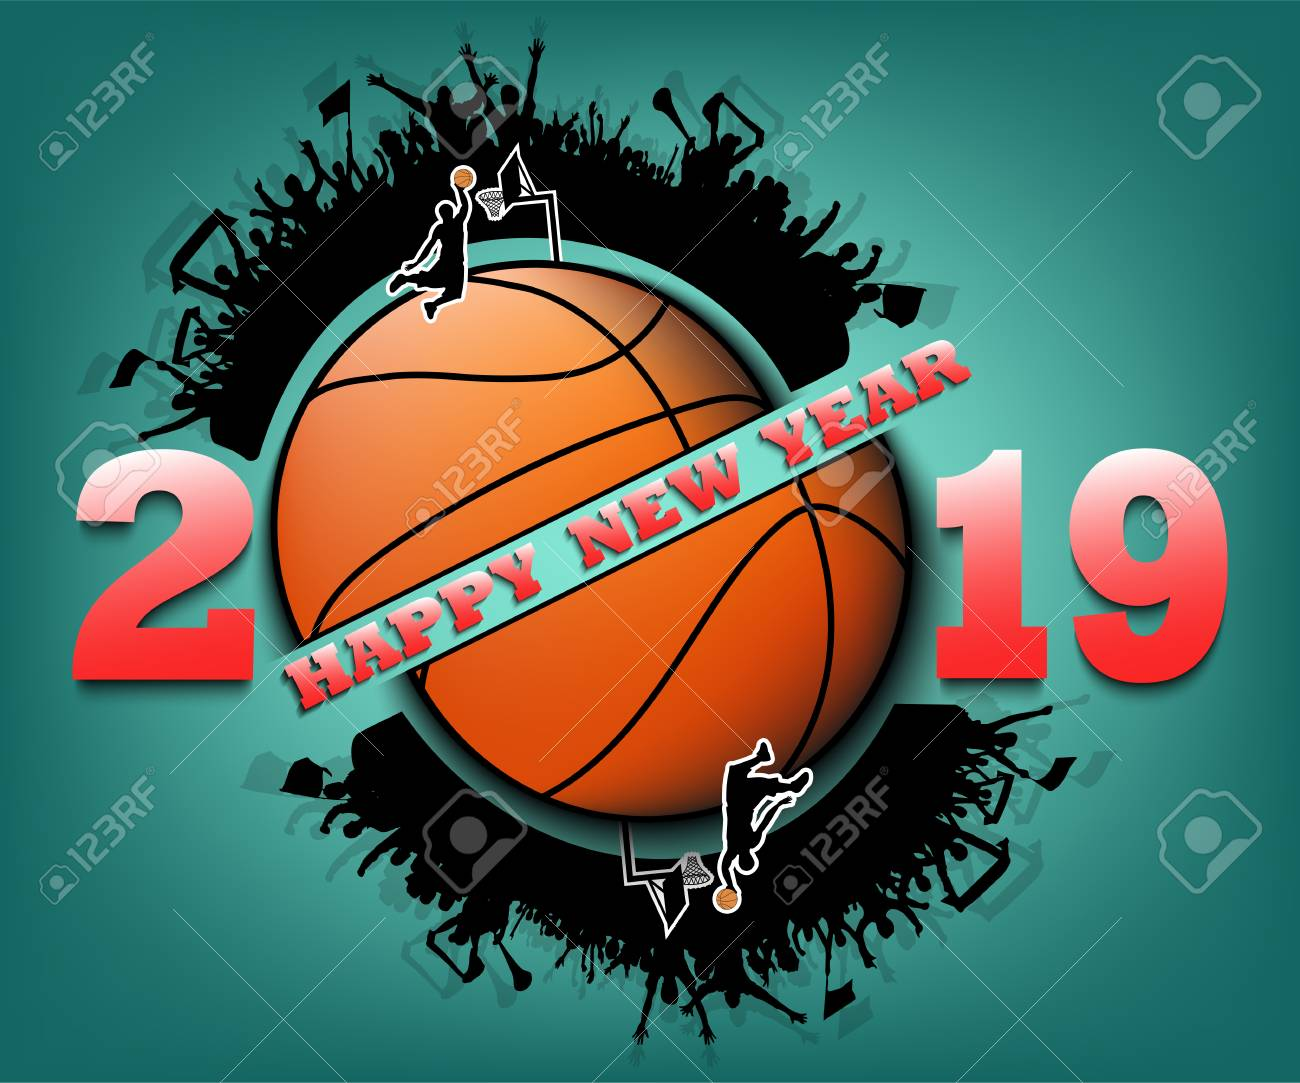 Basketball Ball Happy New Year 2019 And Basketball Ball With Football Fans Creative